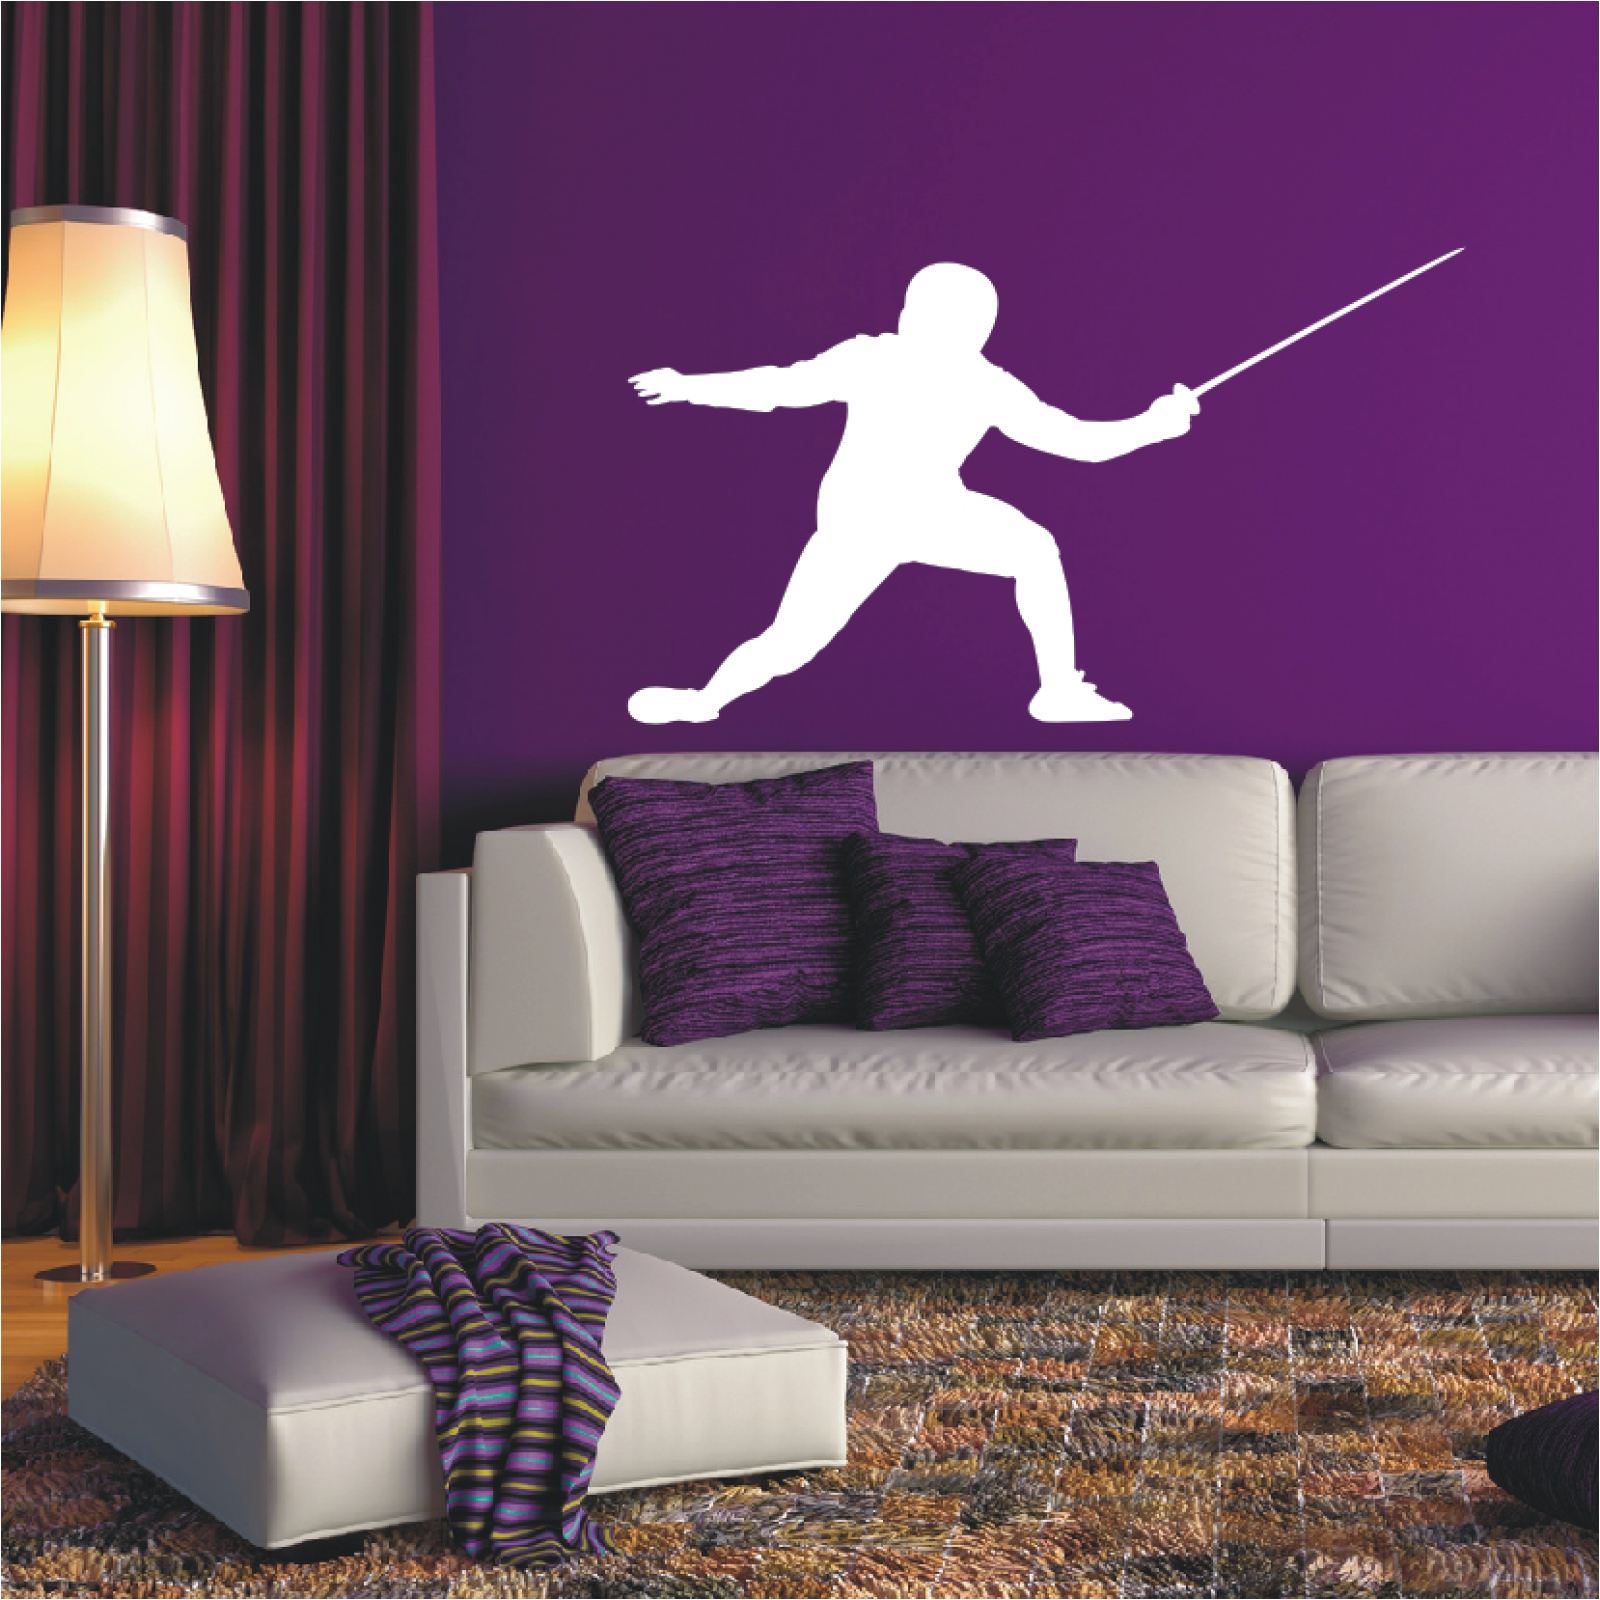 Shadow Wall Tattoo Fencing Fencer Scabbard Sports Wall Decal Sticker ...